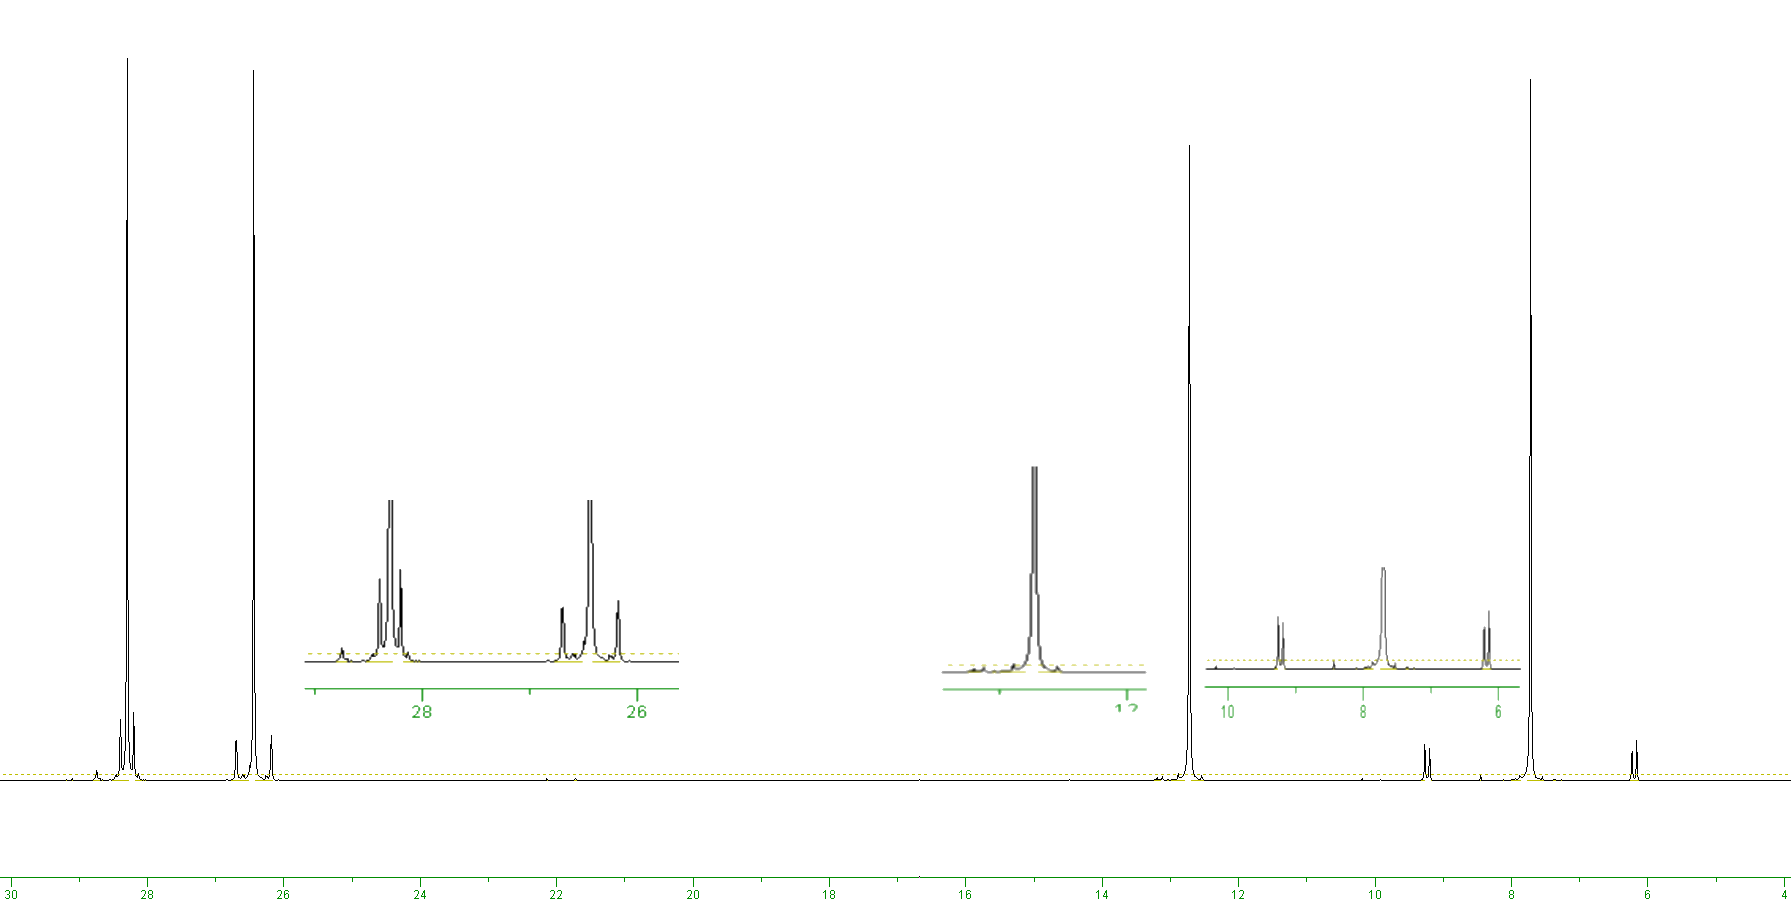 13C NMR spectrum and inset expansions showing tin satellites on each of the carbon resonances